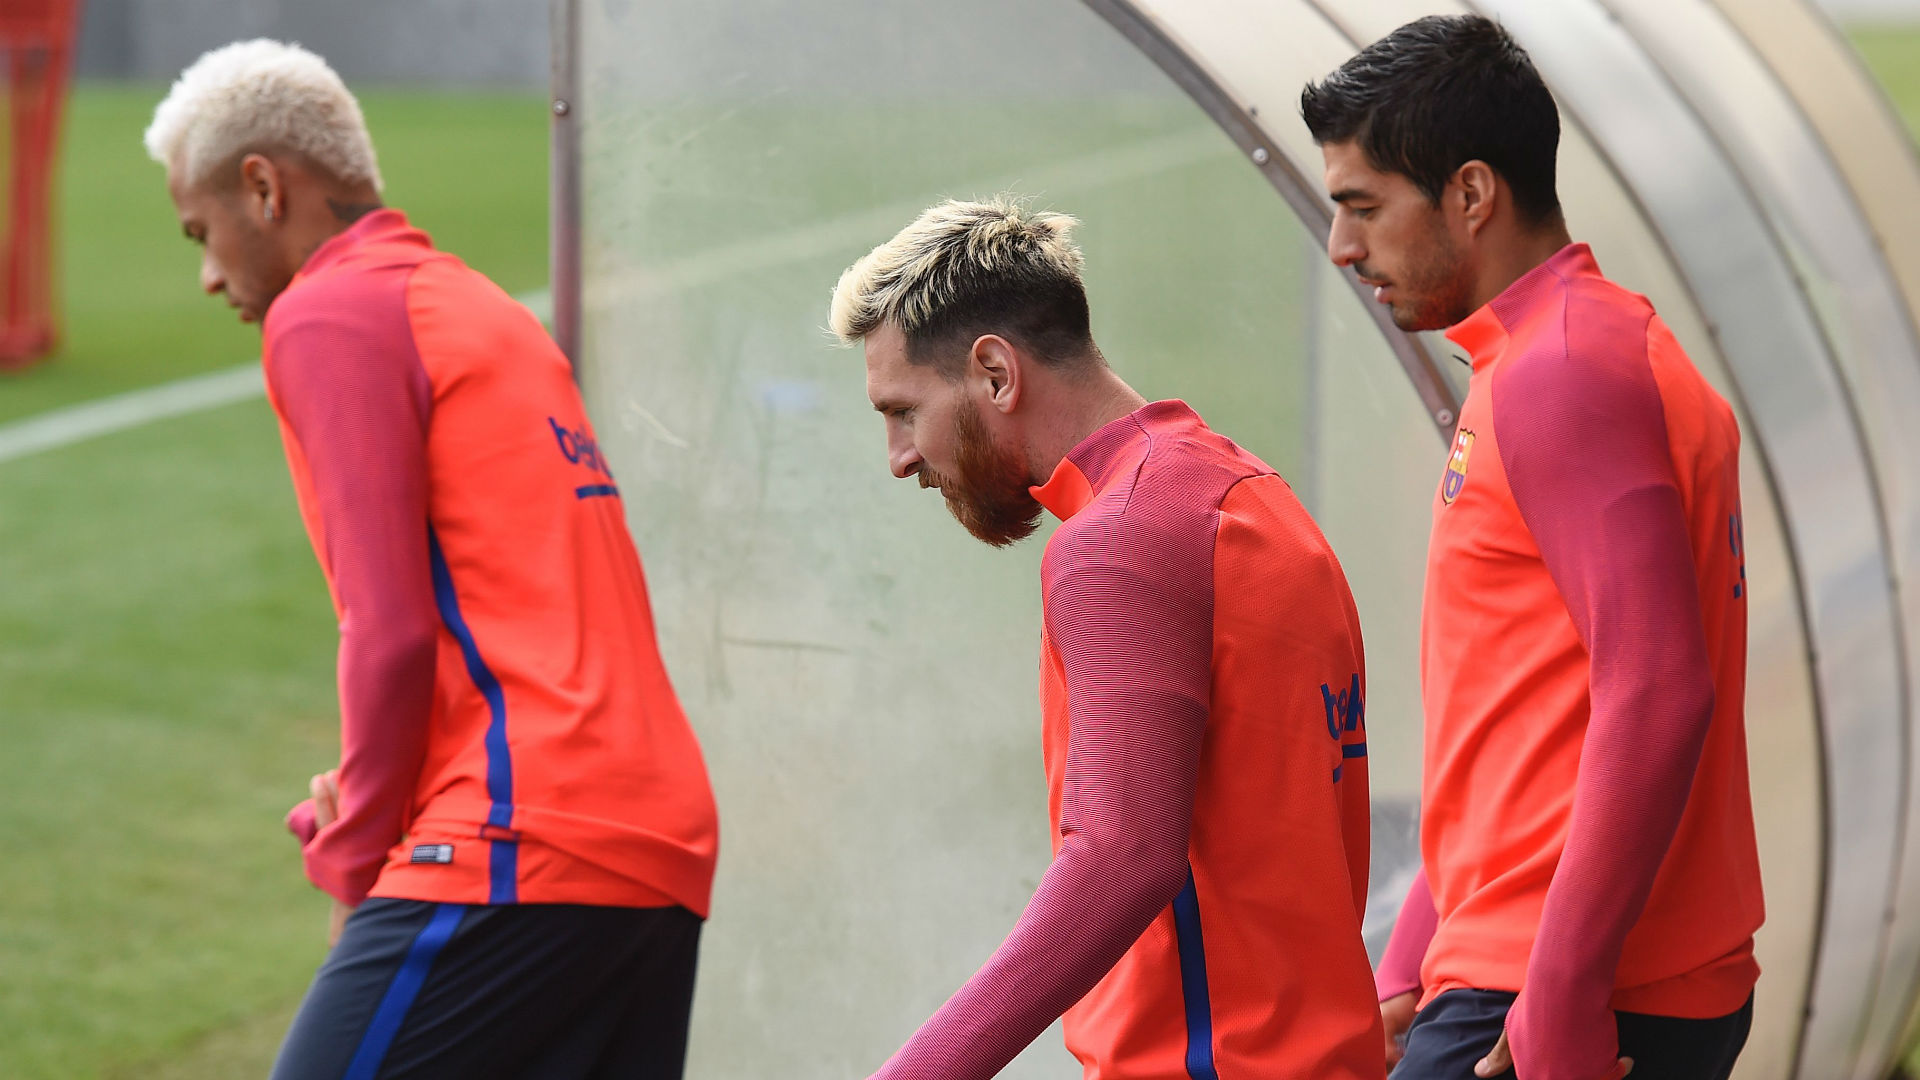 Barcelona vs Manchester City confirmed line-ups: Aguero benched while 'MSN' lead hosts